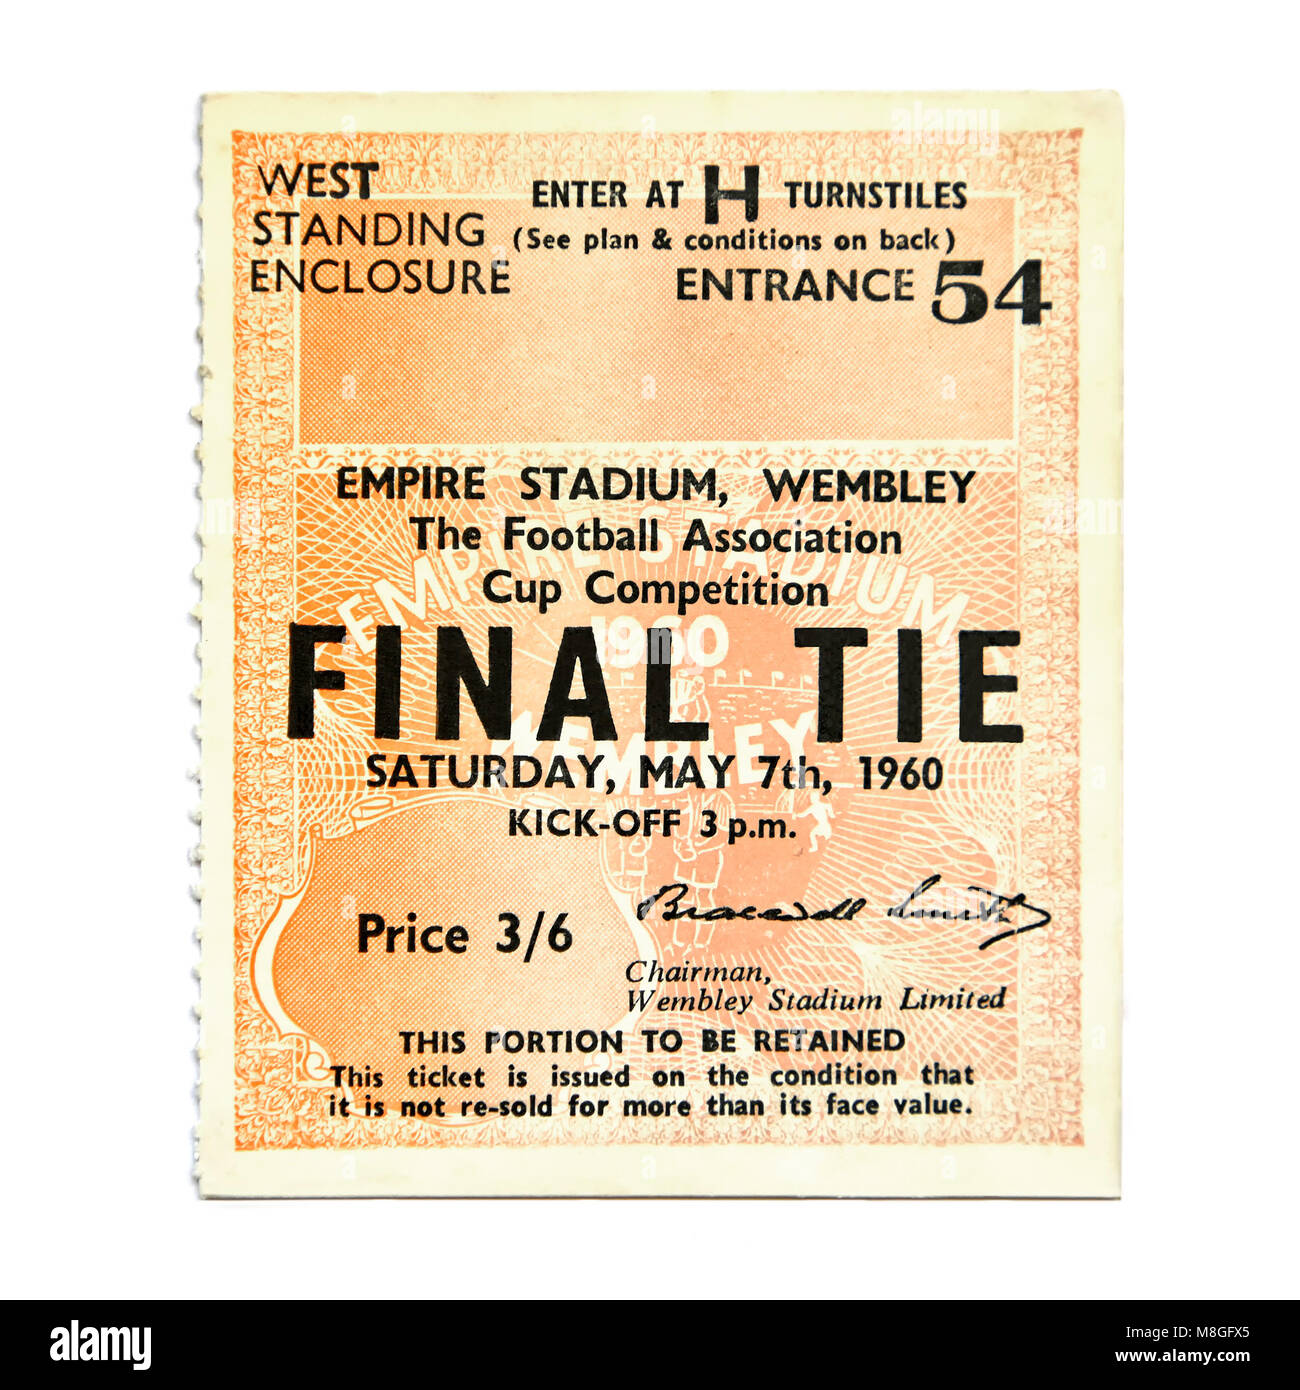 Value inflation & prices reflected in this old historical London football ticket stub with vintage 1960s price - Stock Image